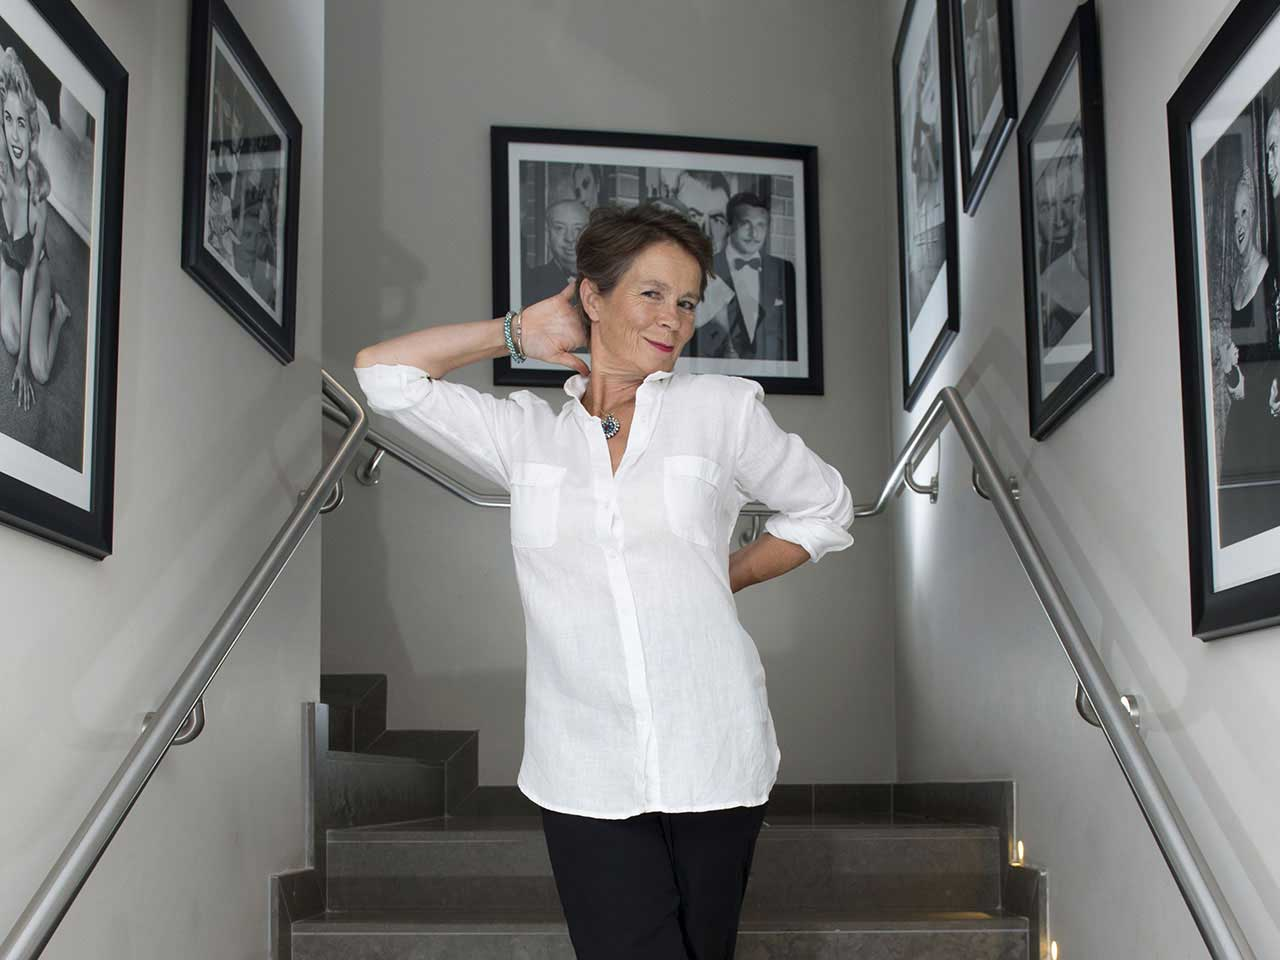 Celia Imrie at St James Theatre